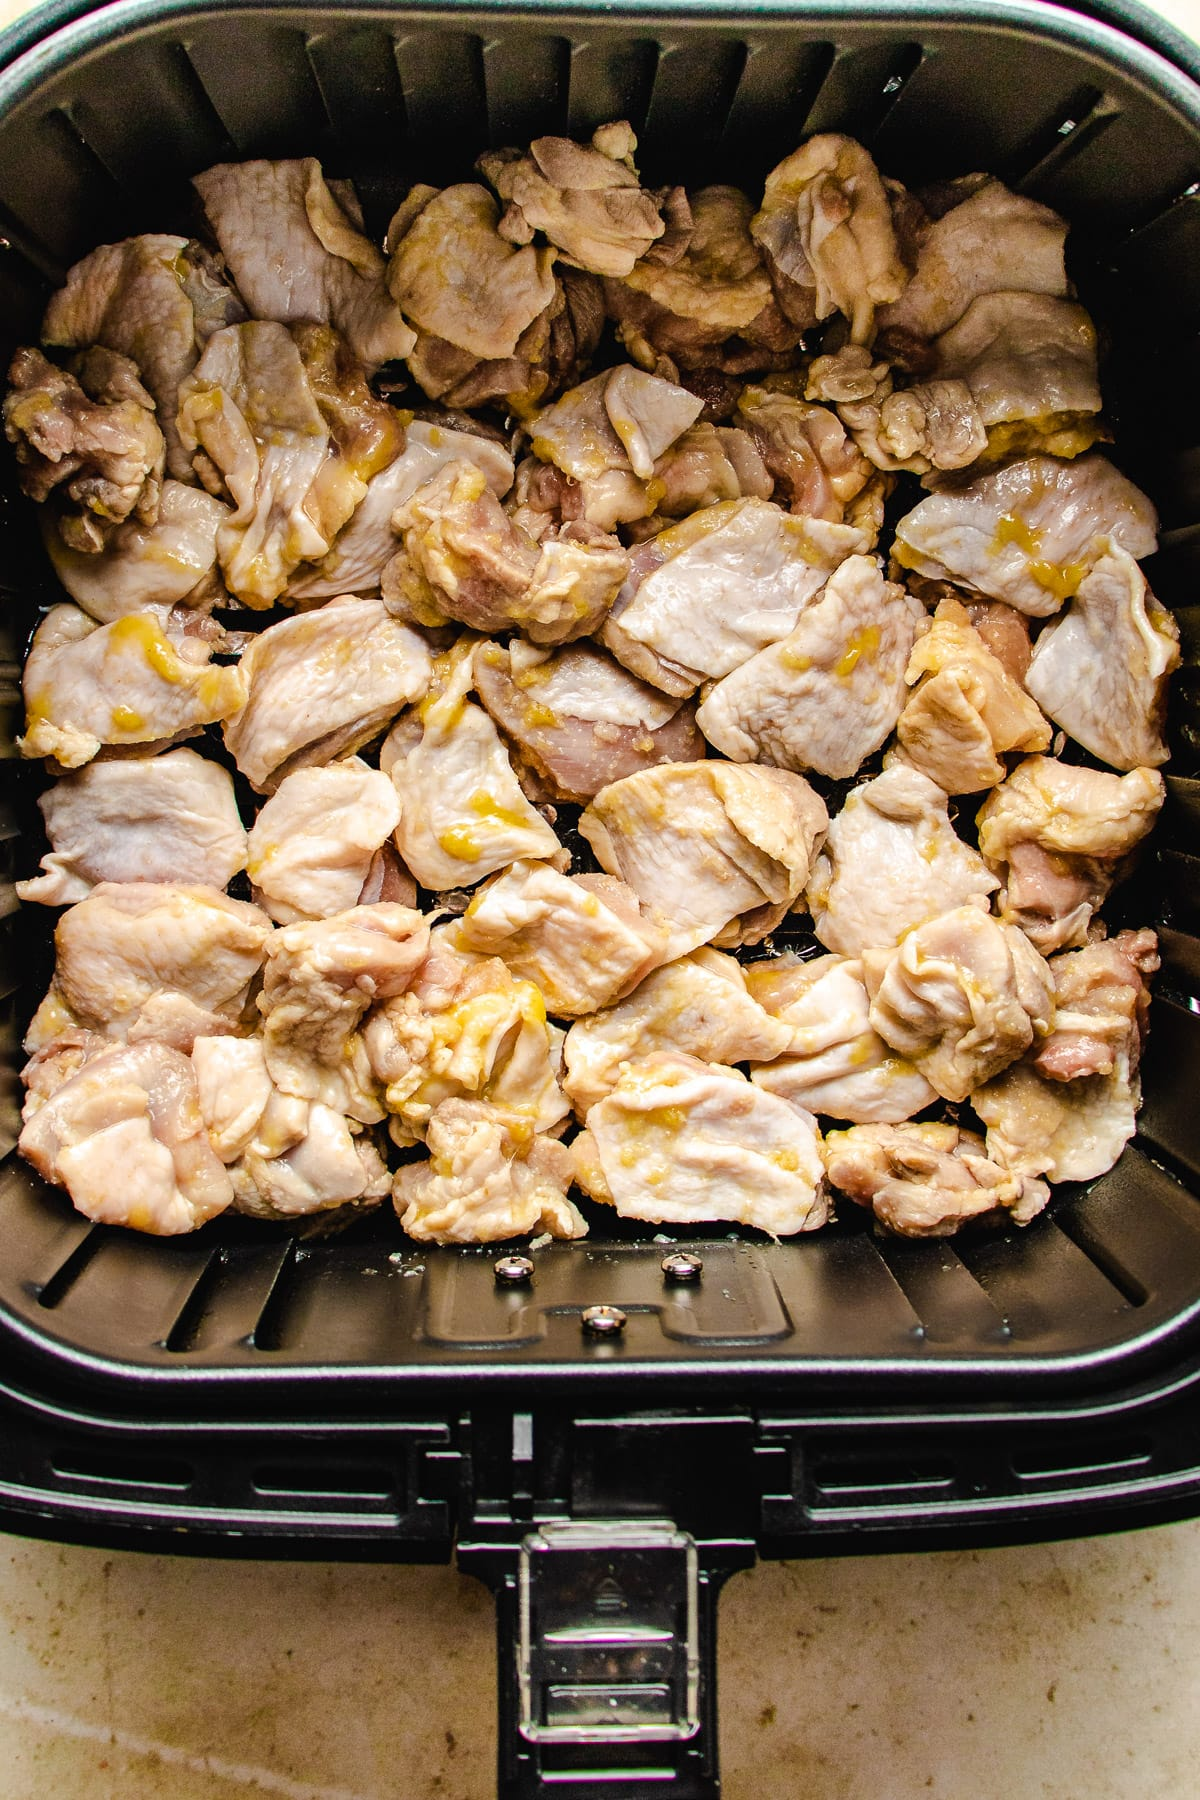 Place the marinated chicken thighs skin side up in the fryer basket